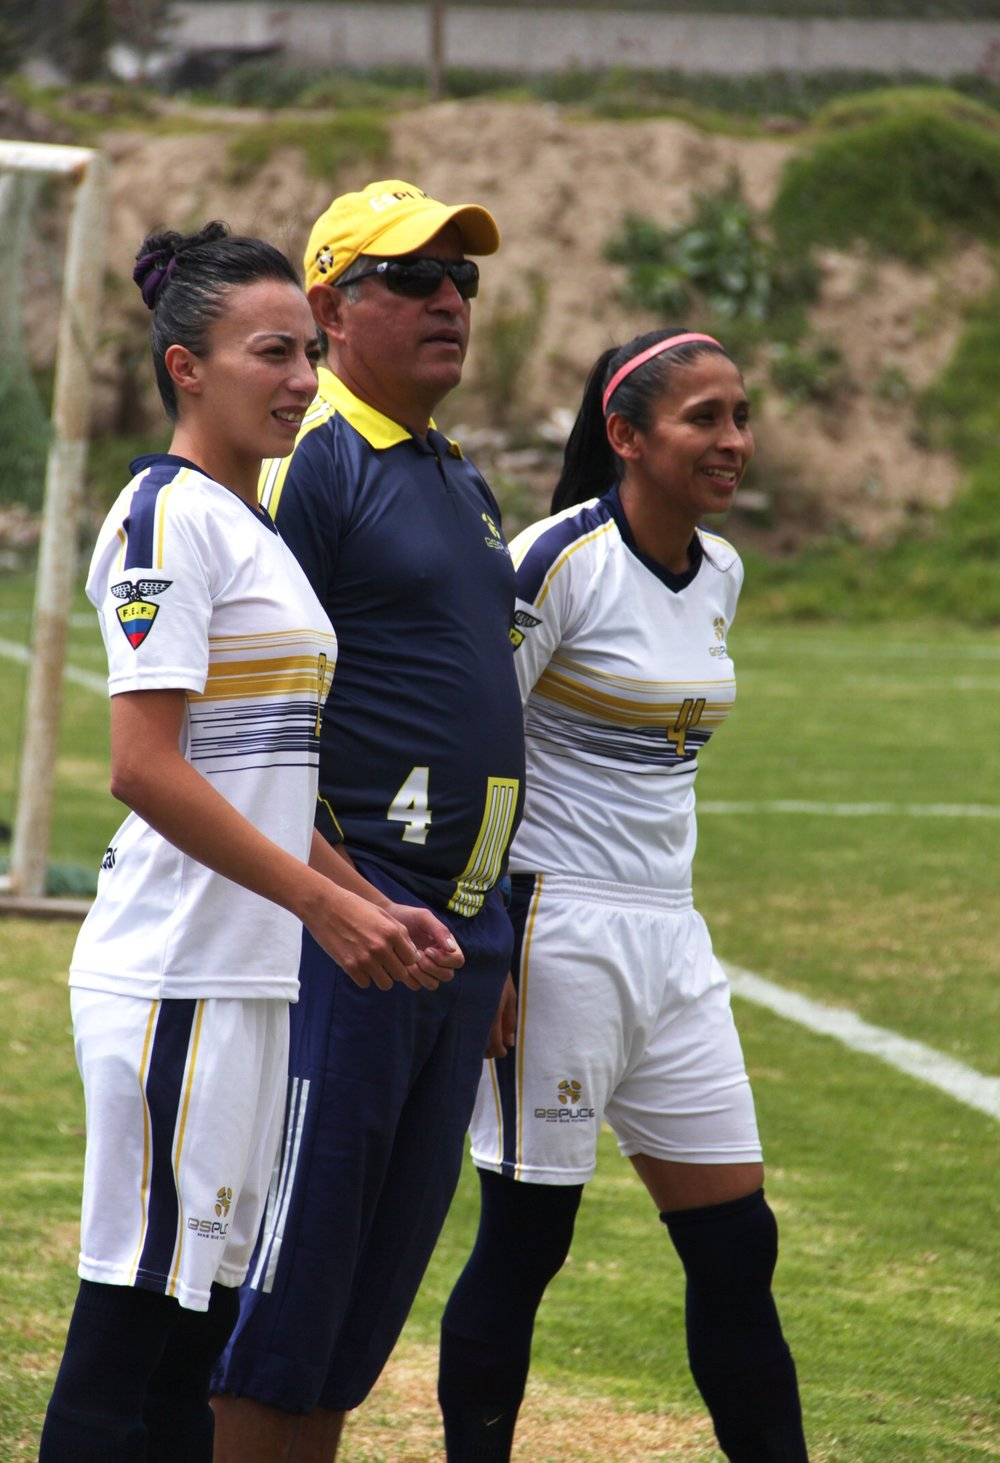 From left to right: Football player Carina Pulla, coach Mauricio Garcia and player and member of the Ecuador National Team Merly Zambrano. Source: Espuce Facebook page